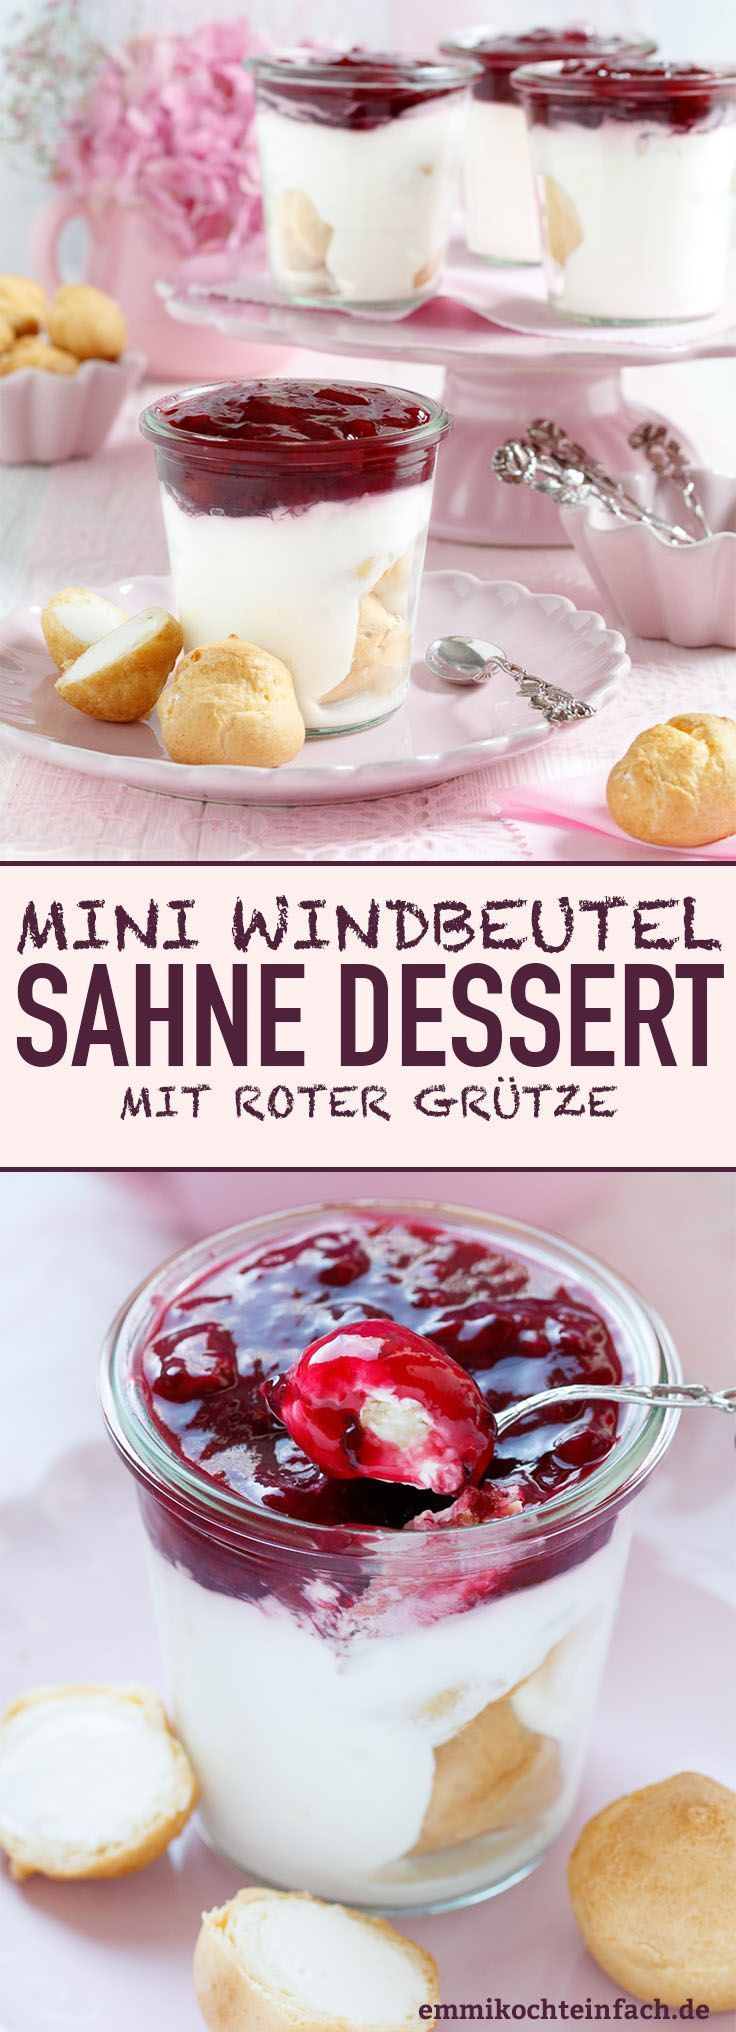 Mini cream puff cream dessert with red groats  easy to cook